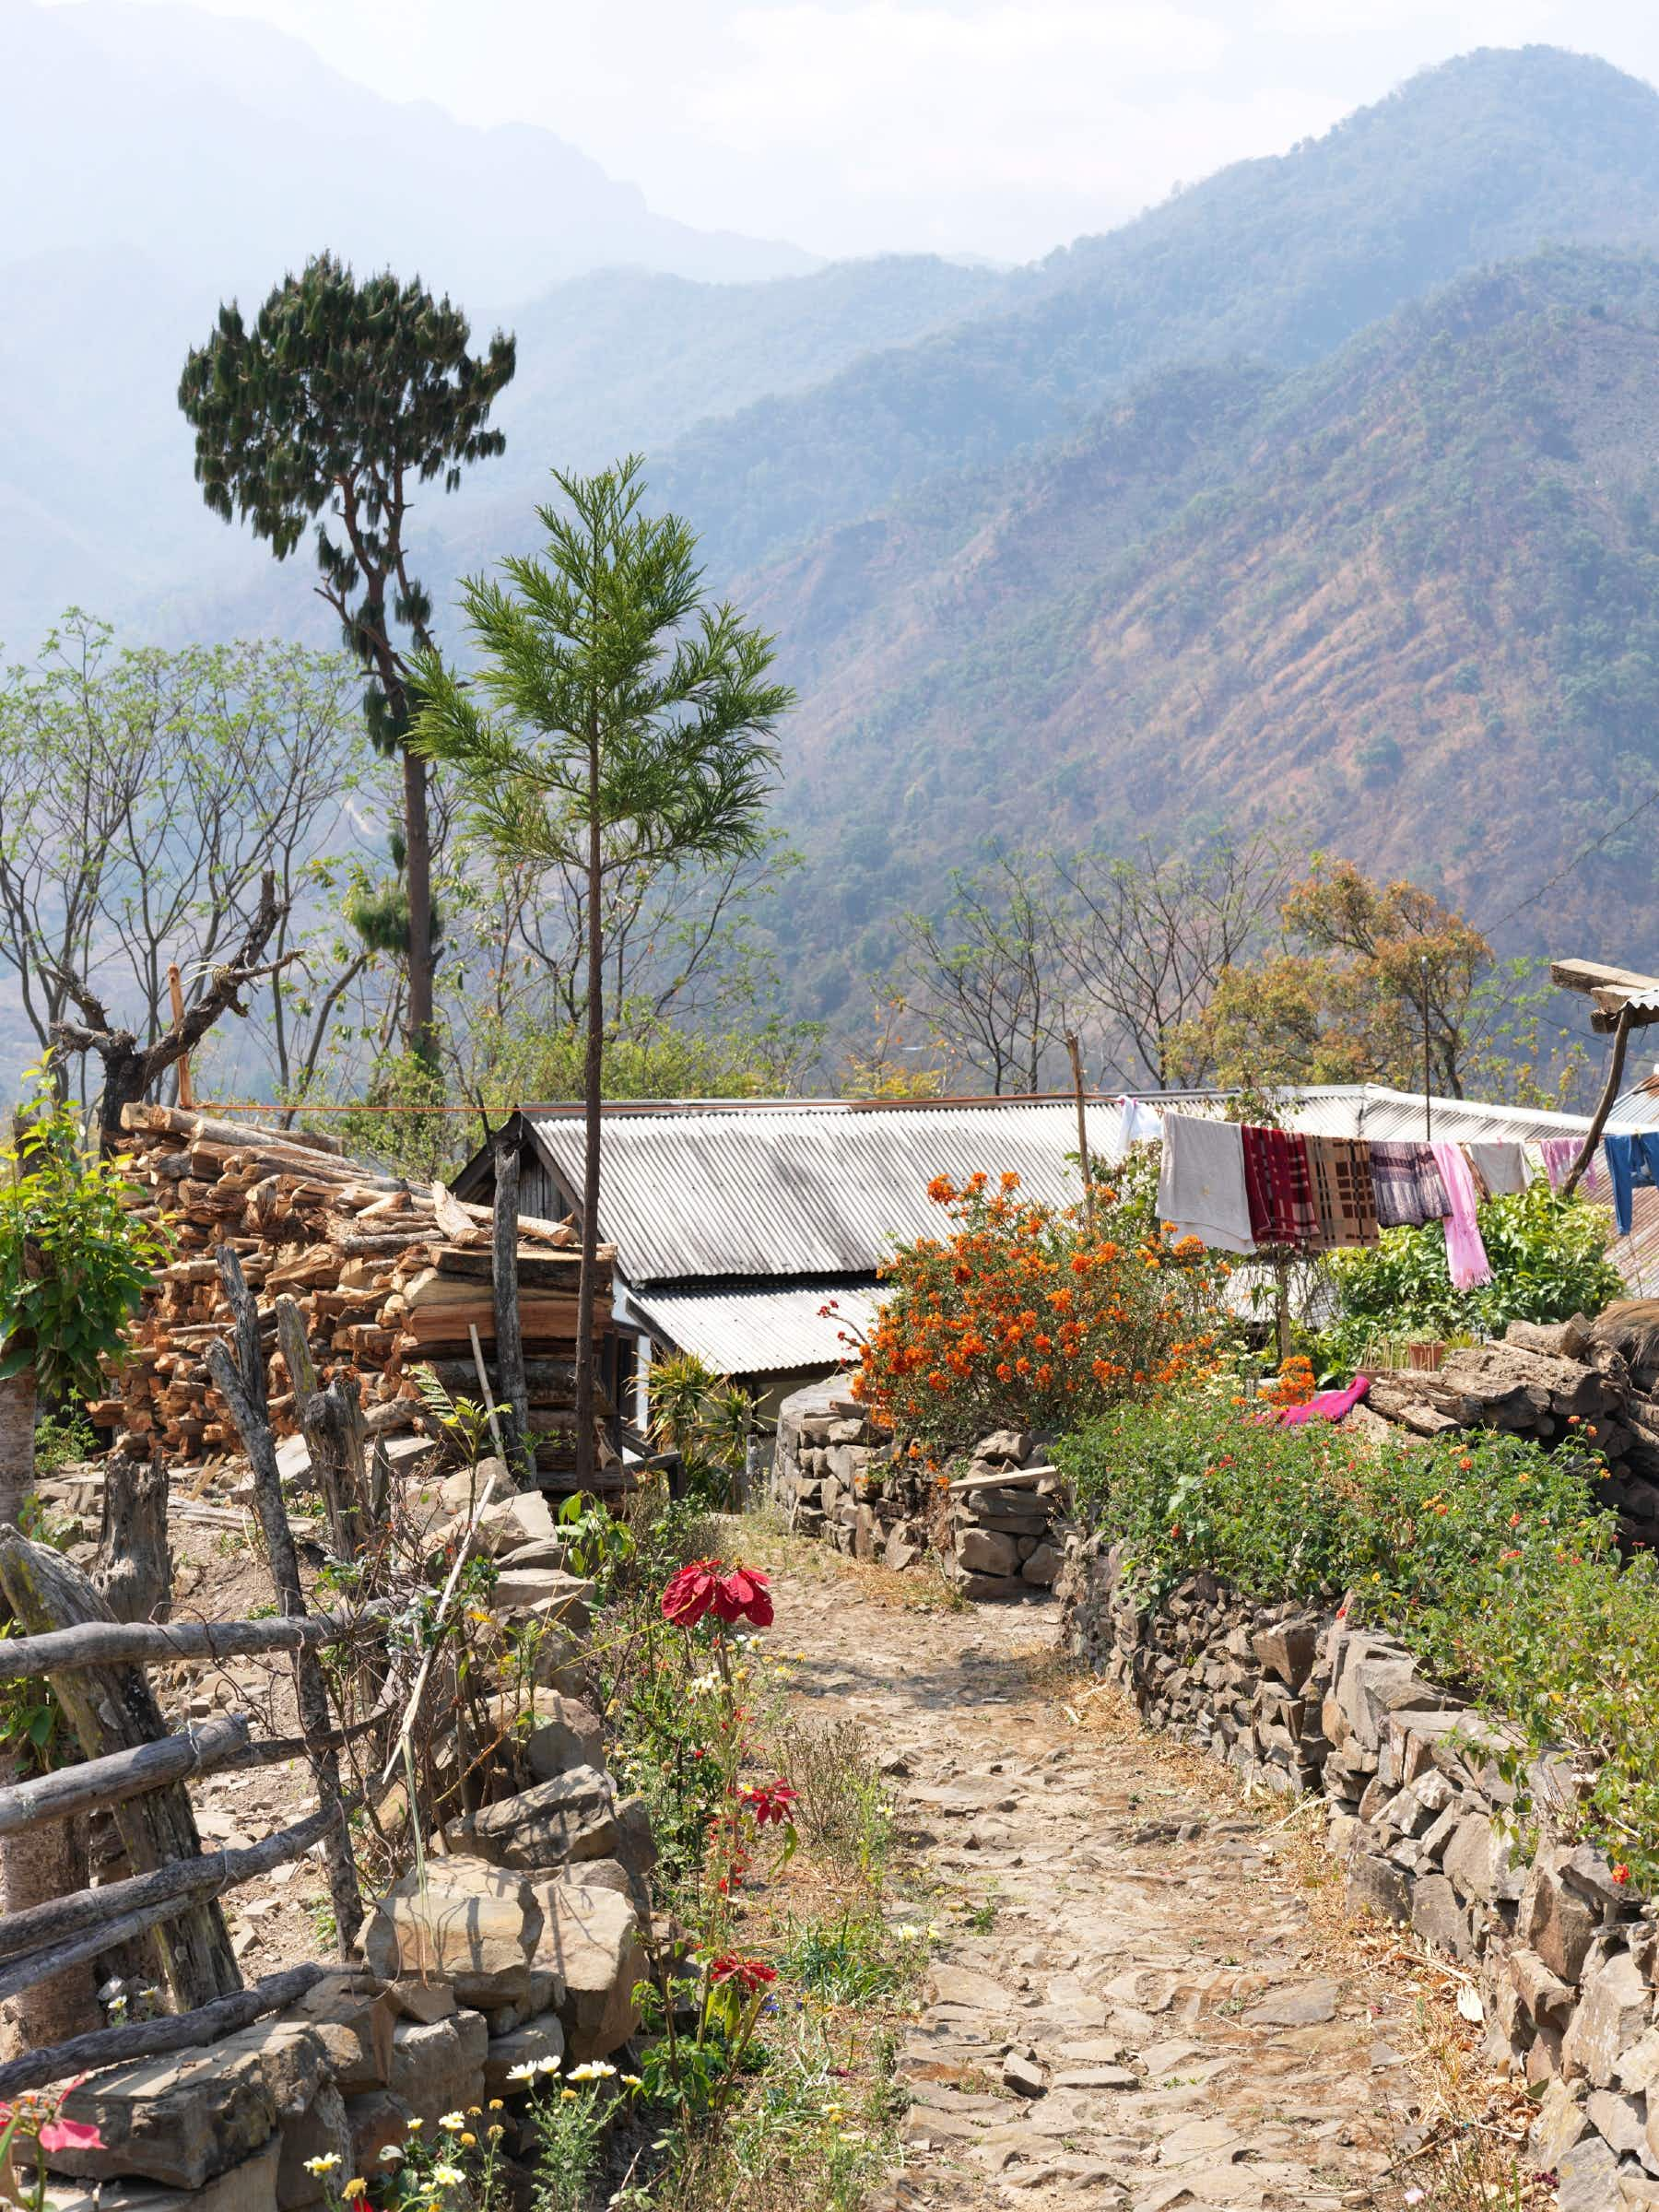 The tribal heartland of Northeast India is opening up to travellers